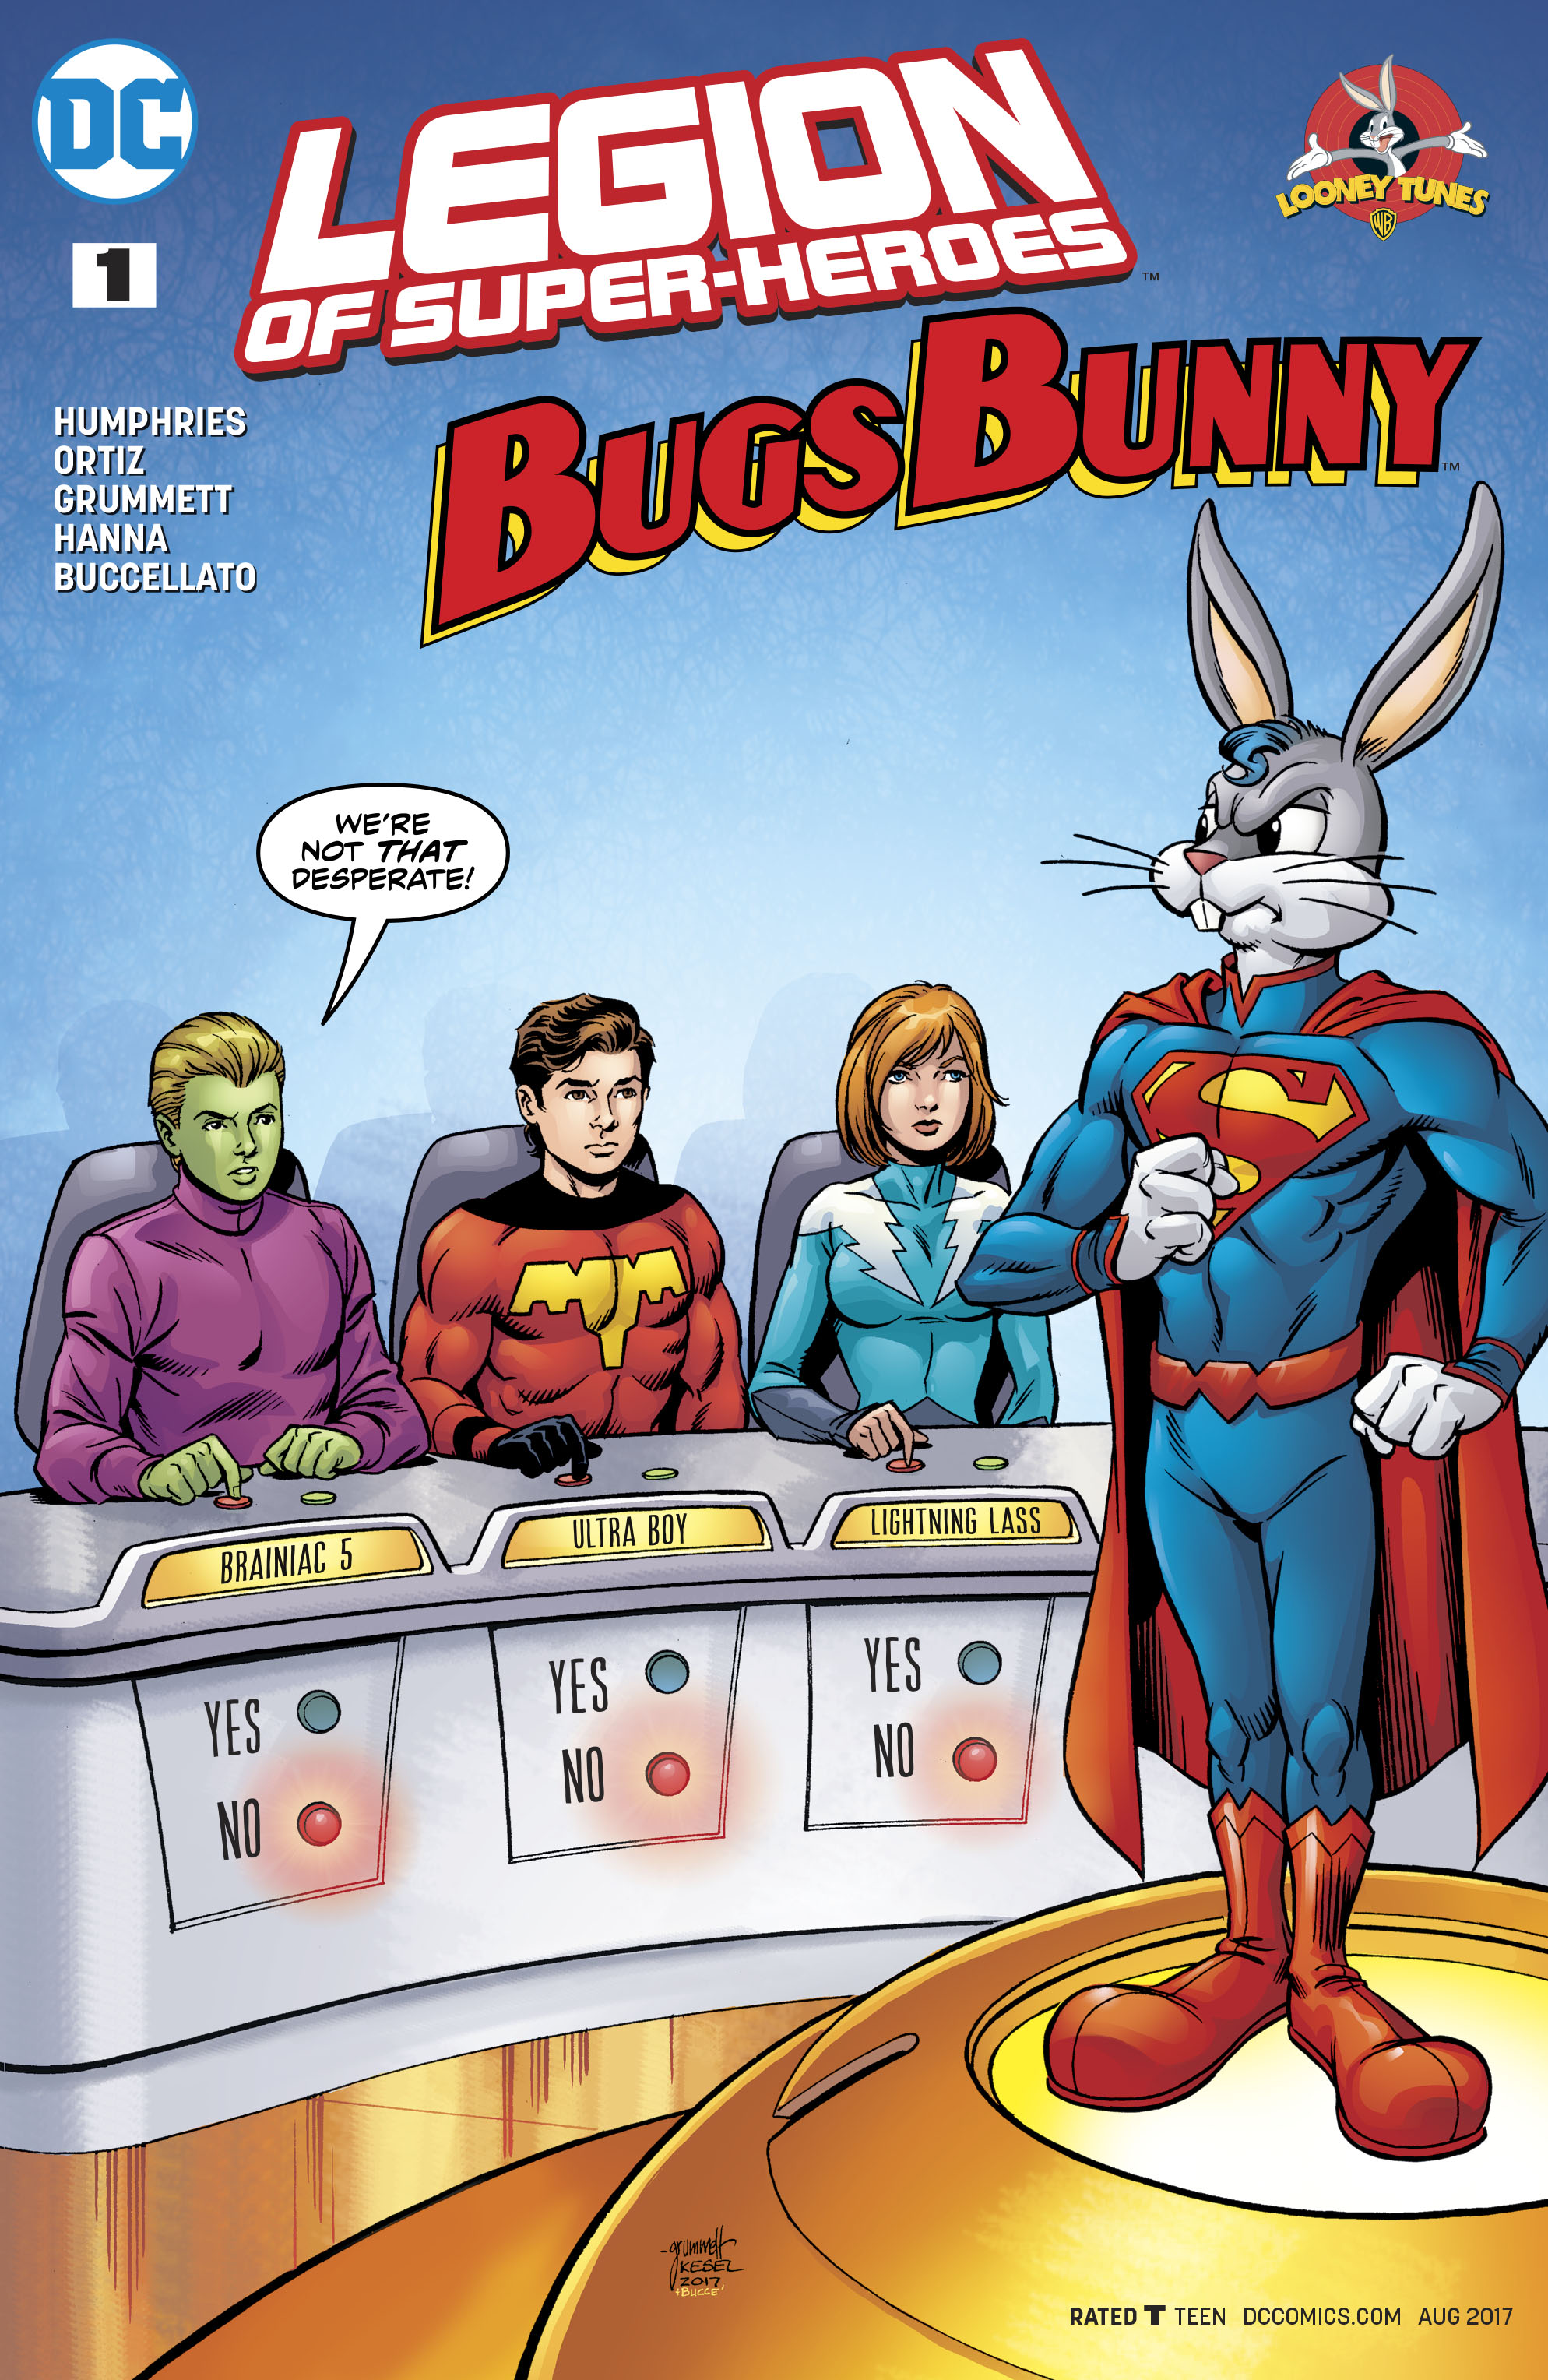 Read online Legion of Super-Heroes/Bugs Bunny Special comic -  Issue # Full - 1